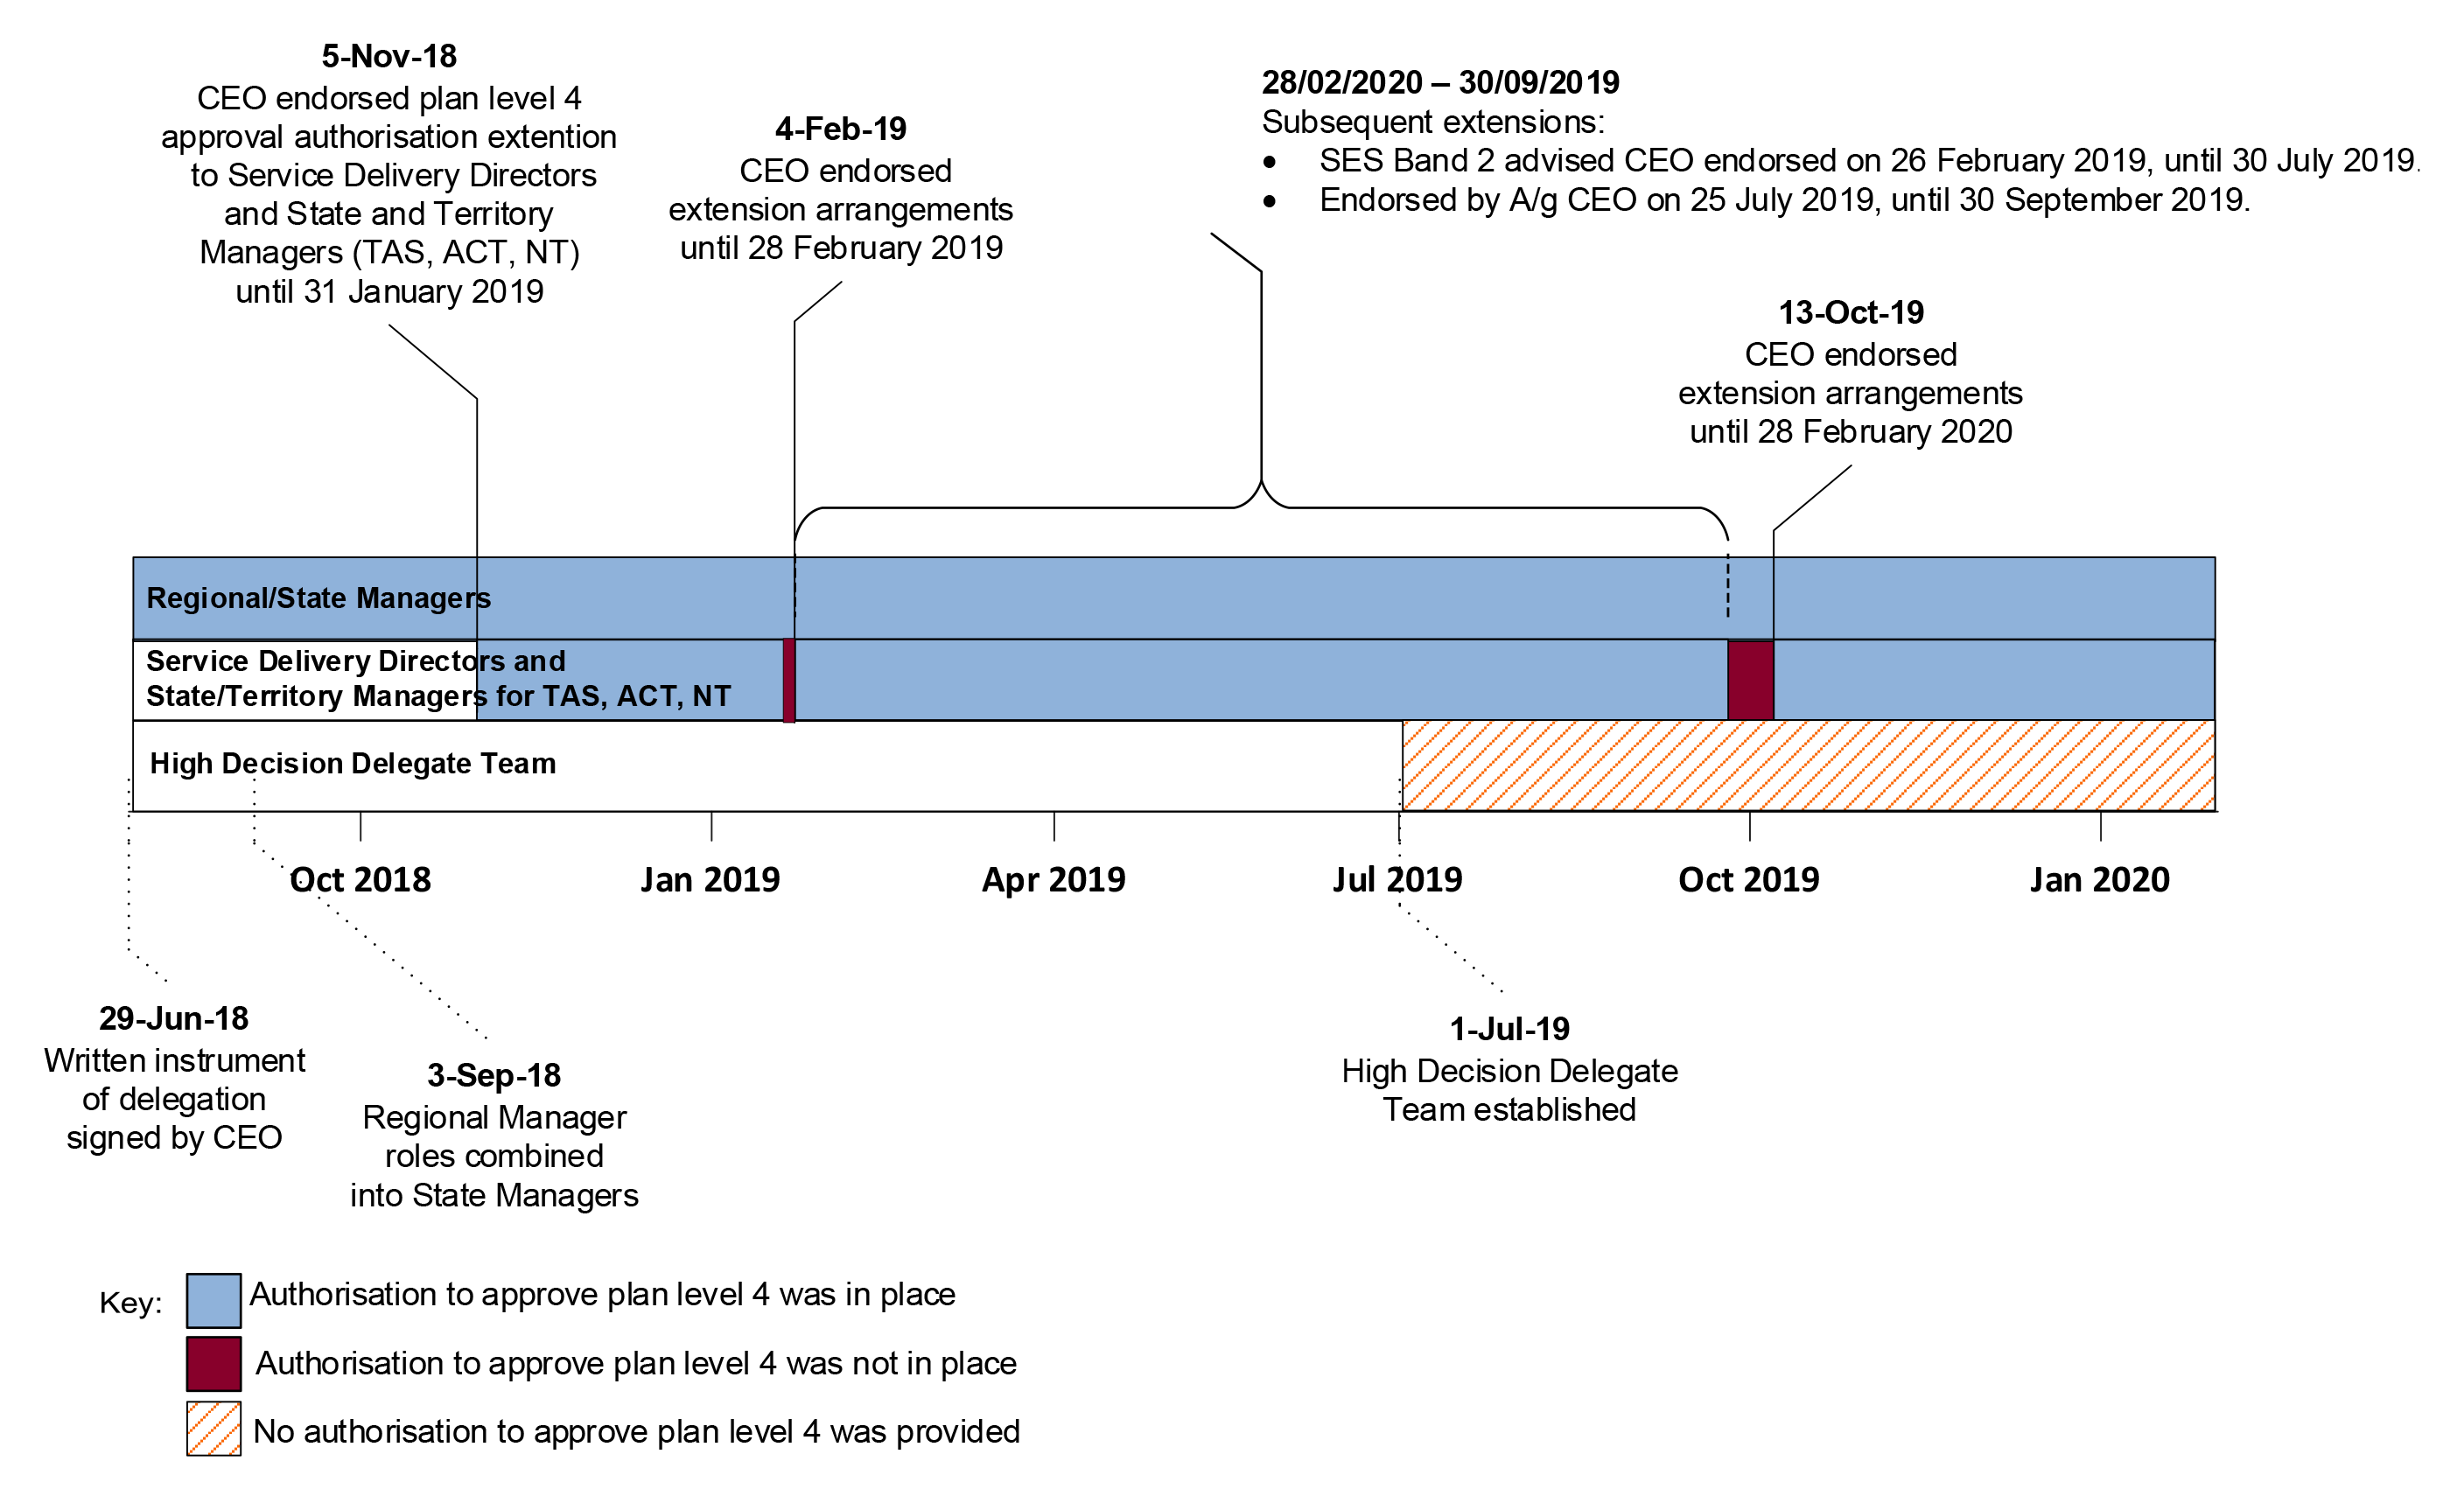 A timeline that summarises the information described in paragraphs 2.24 to 2.28.